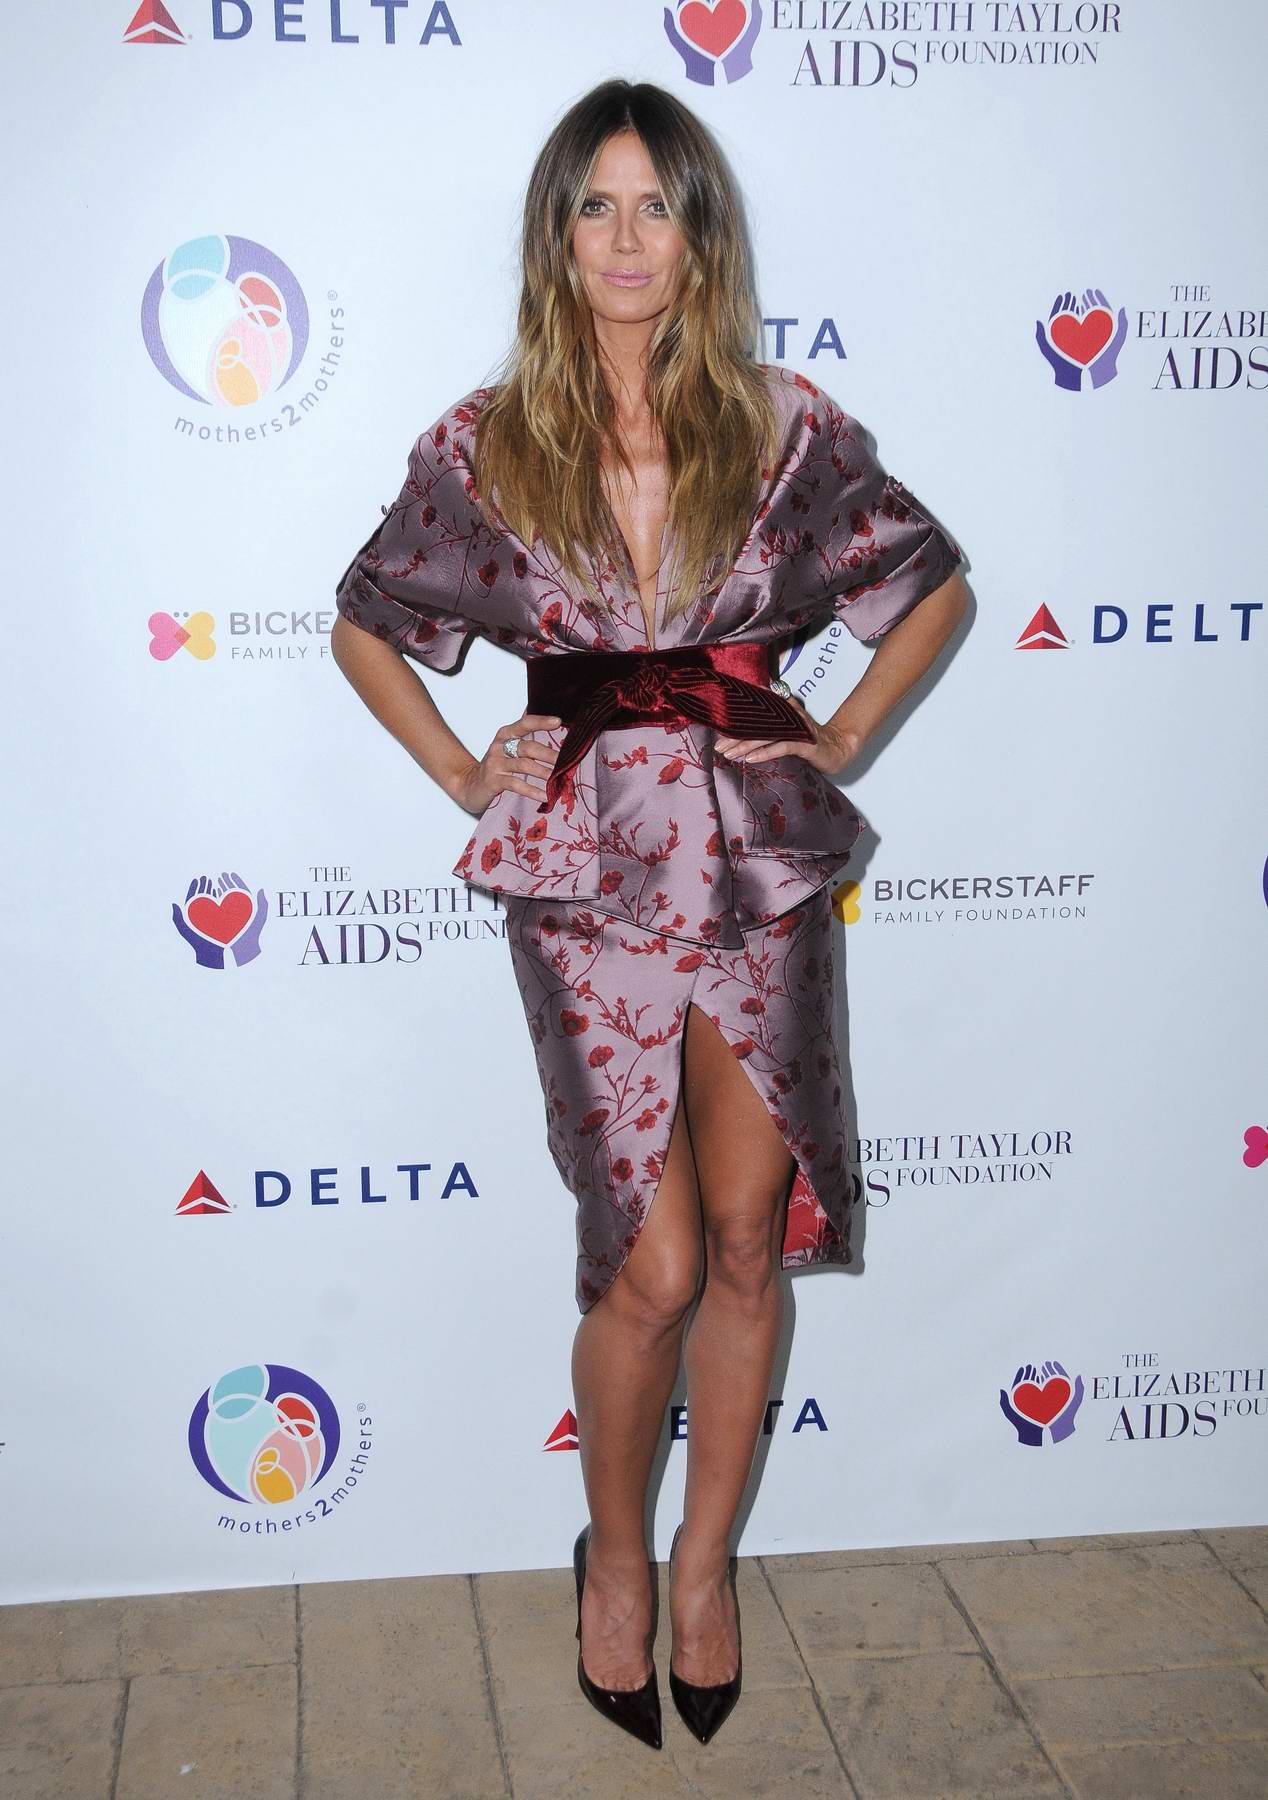 Heidi Klum at Elizabeth Taylor AIDS Foundation and mothers2mothers benefit dinner in Los Angeles